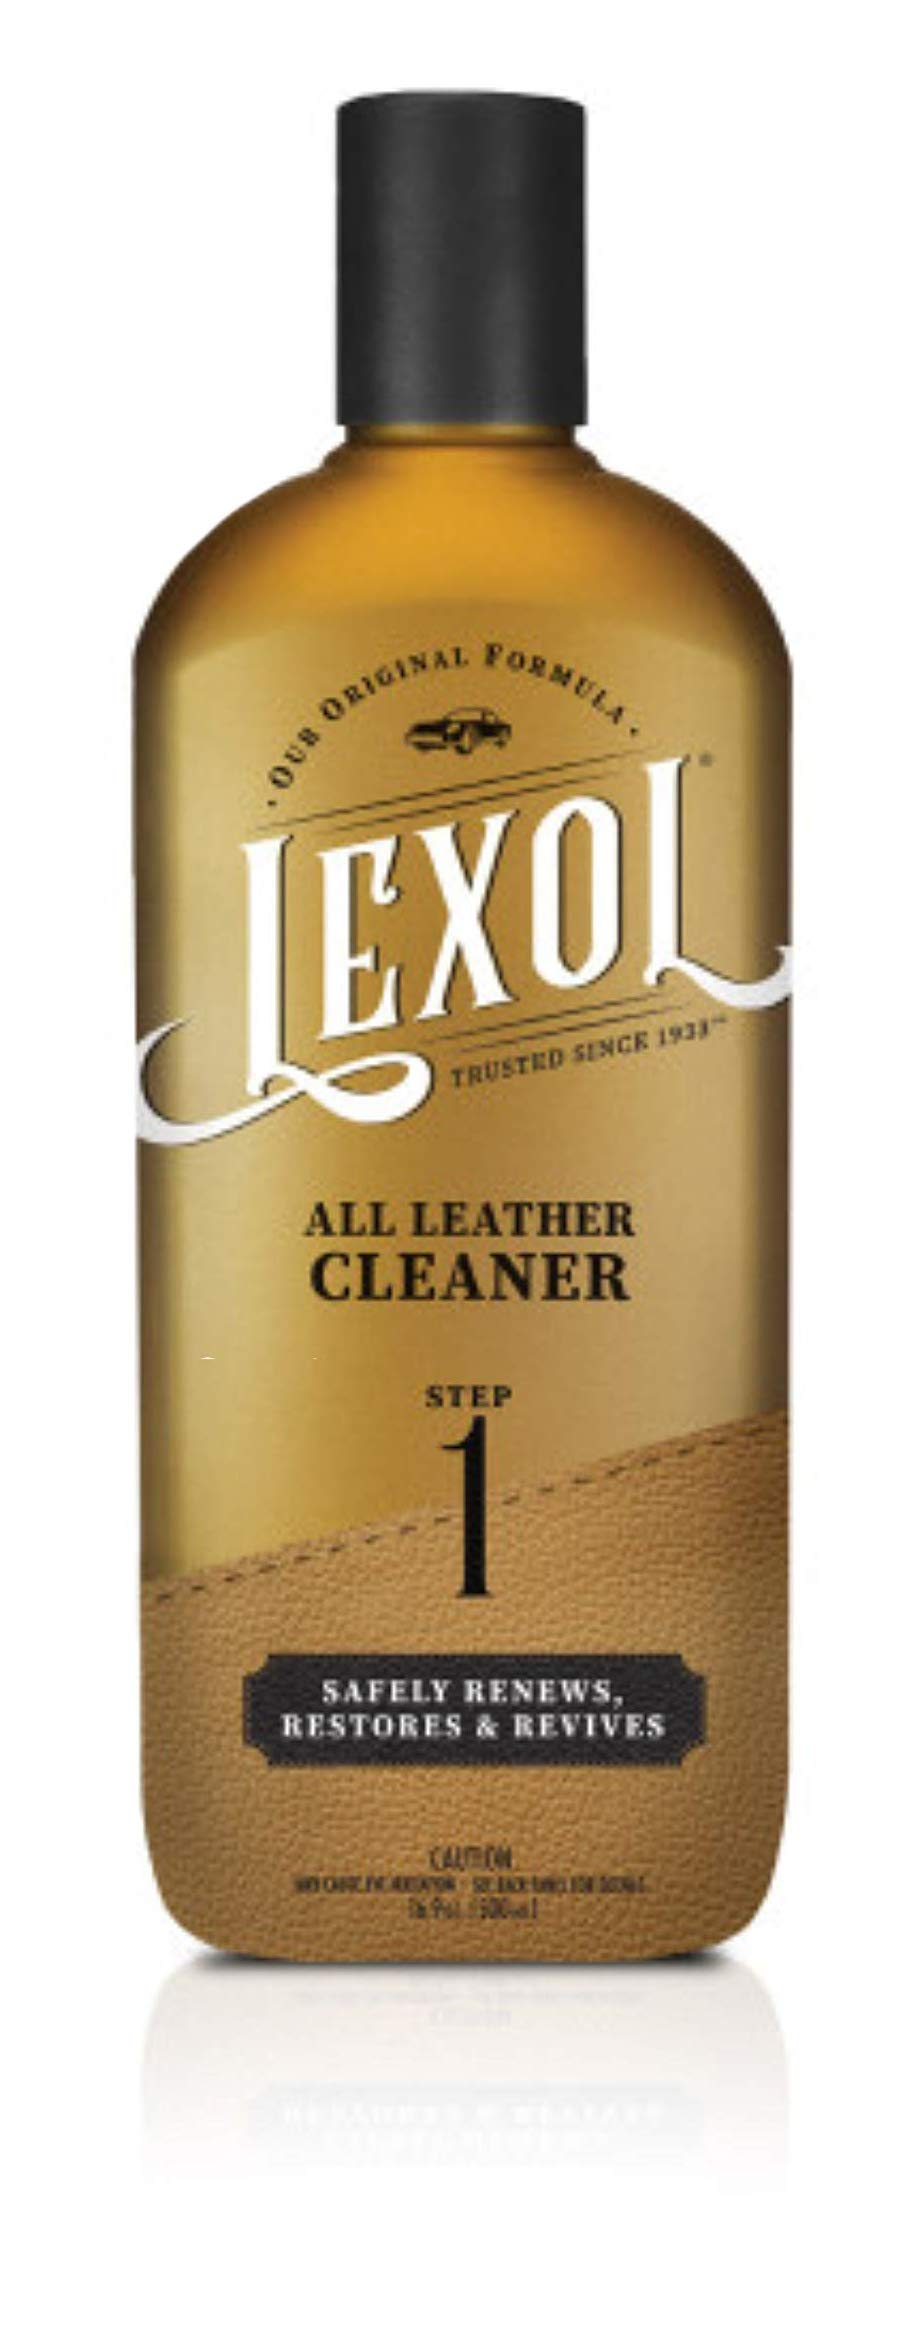 Lexol Leather Cleaner, 16.9 oz Best Cleaning and Conditioner Since 1933-For Use on Apparel, Furniture, Auto Interiors, Shoes, Bags and More